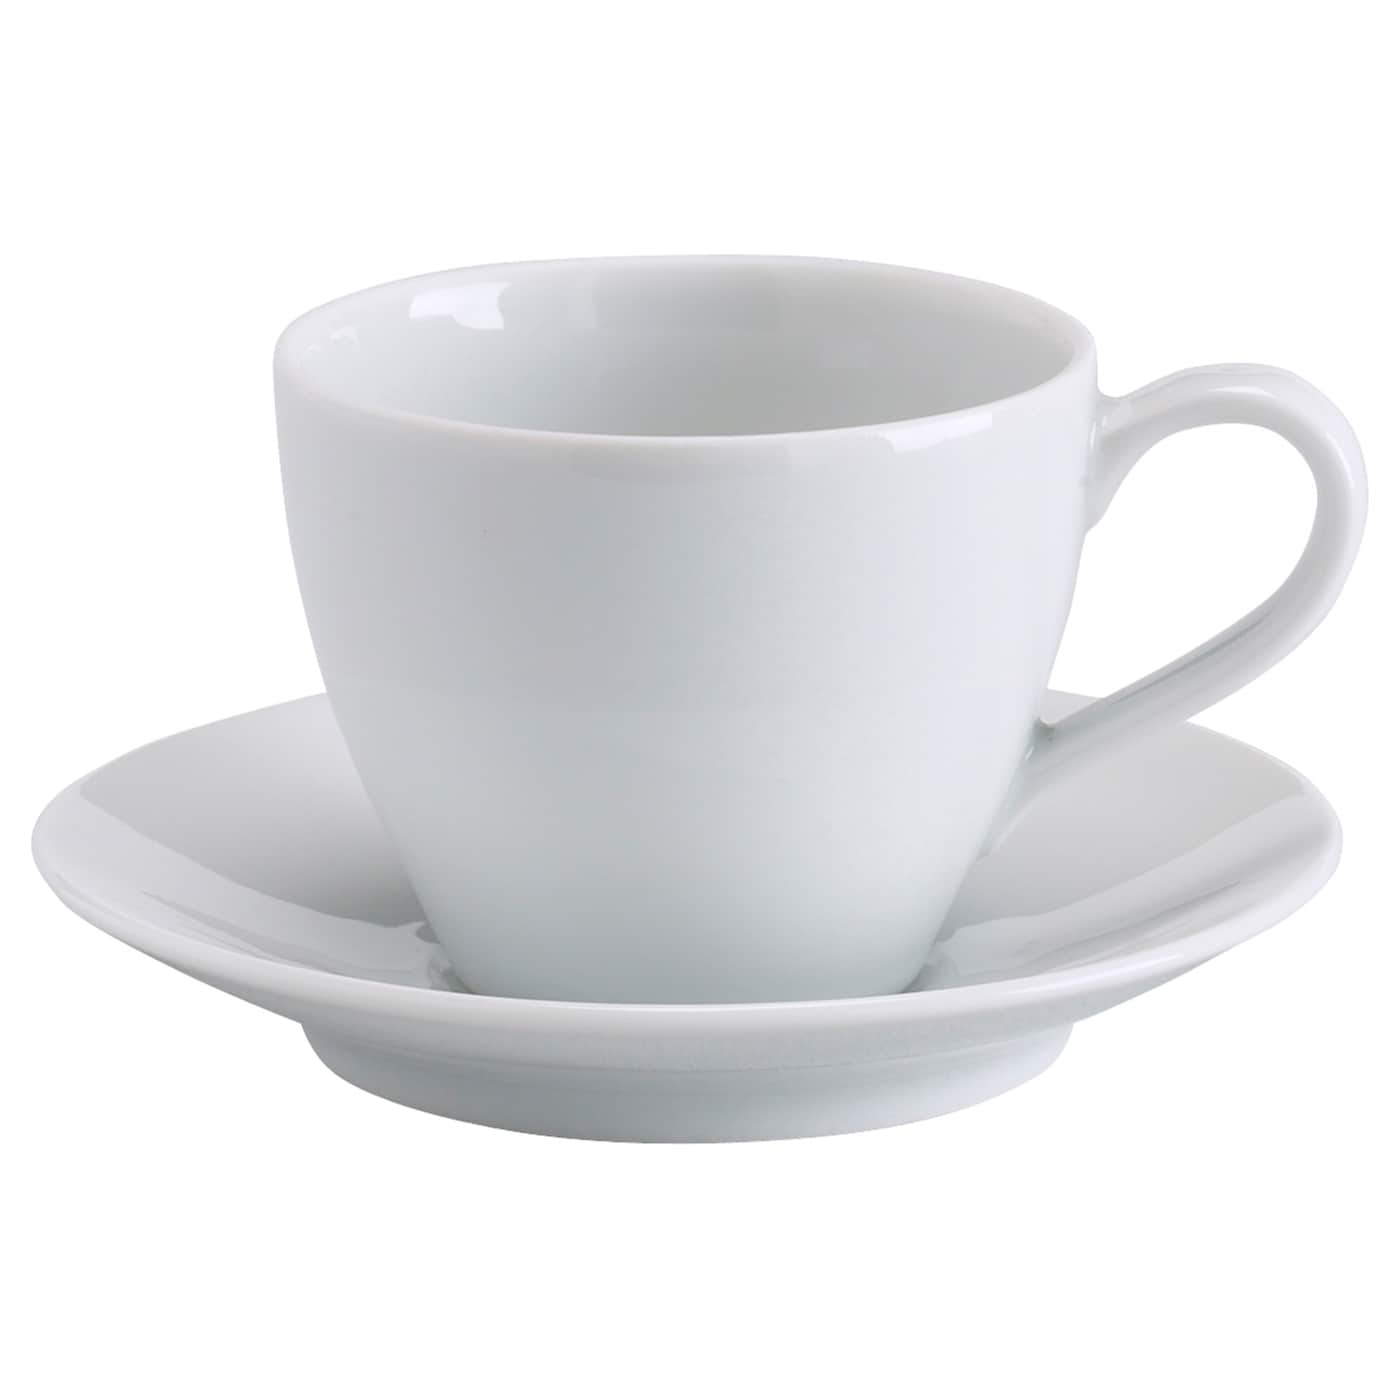 IKEA VÄRDERA coffee cup and saucer